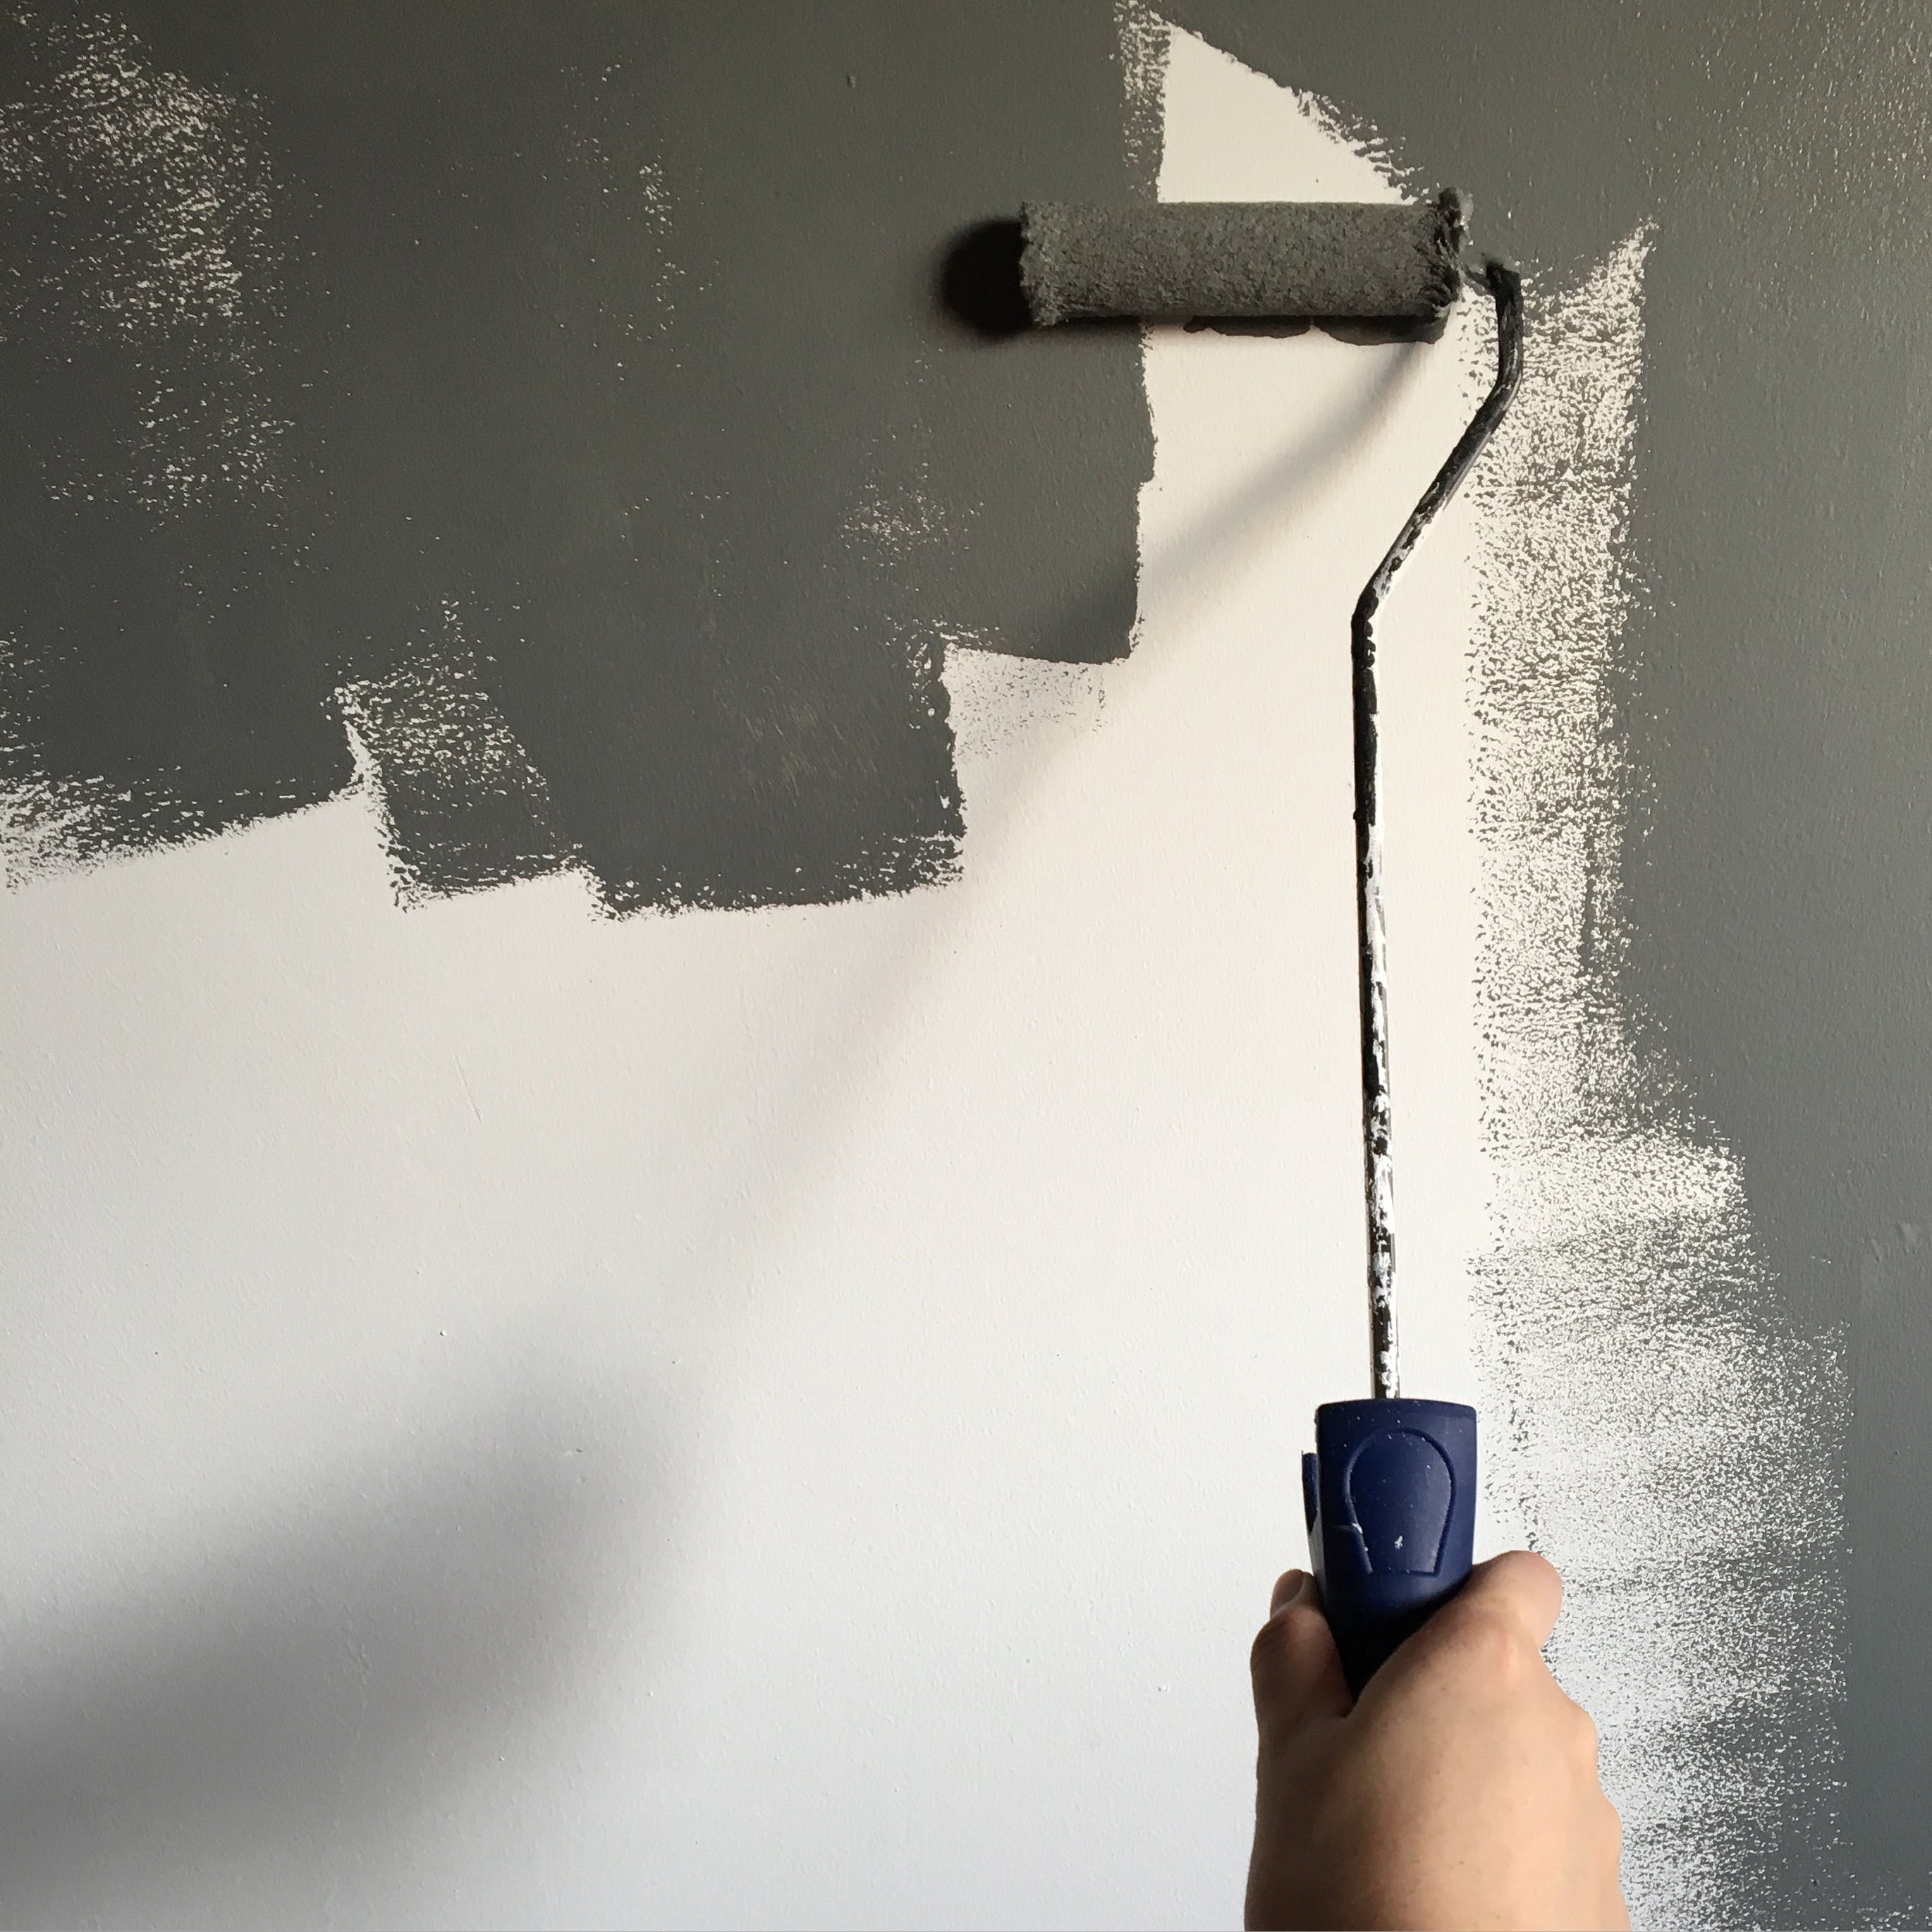 Person Holding Paint Roller While Painting the Wall